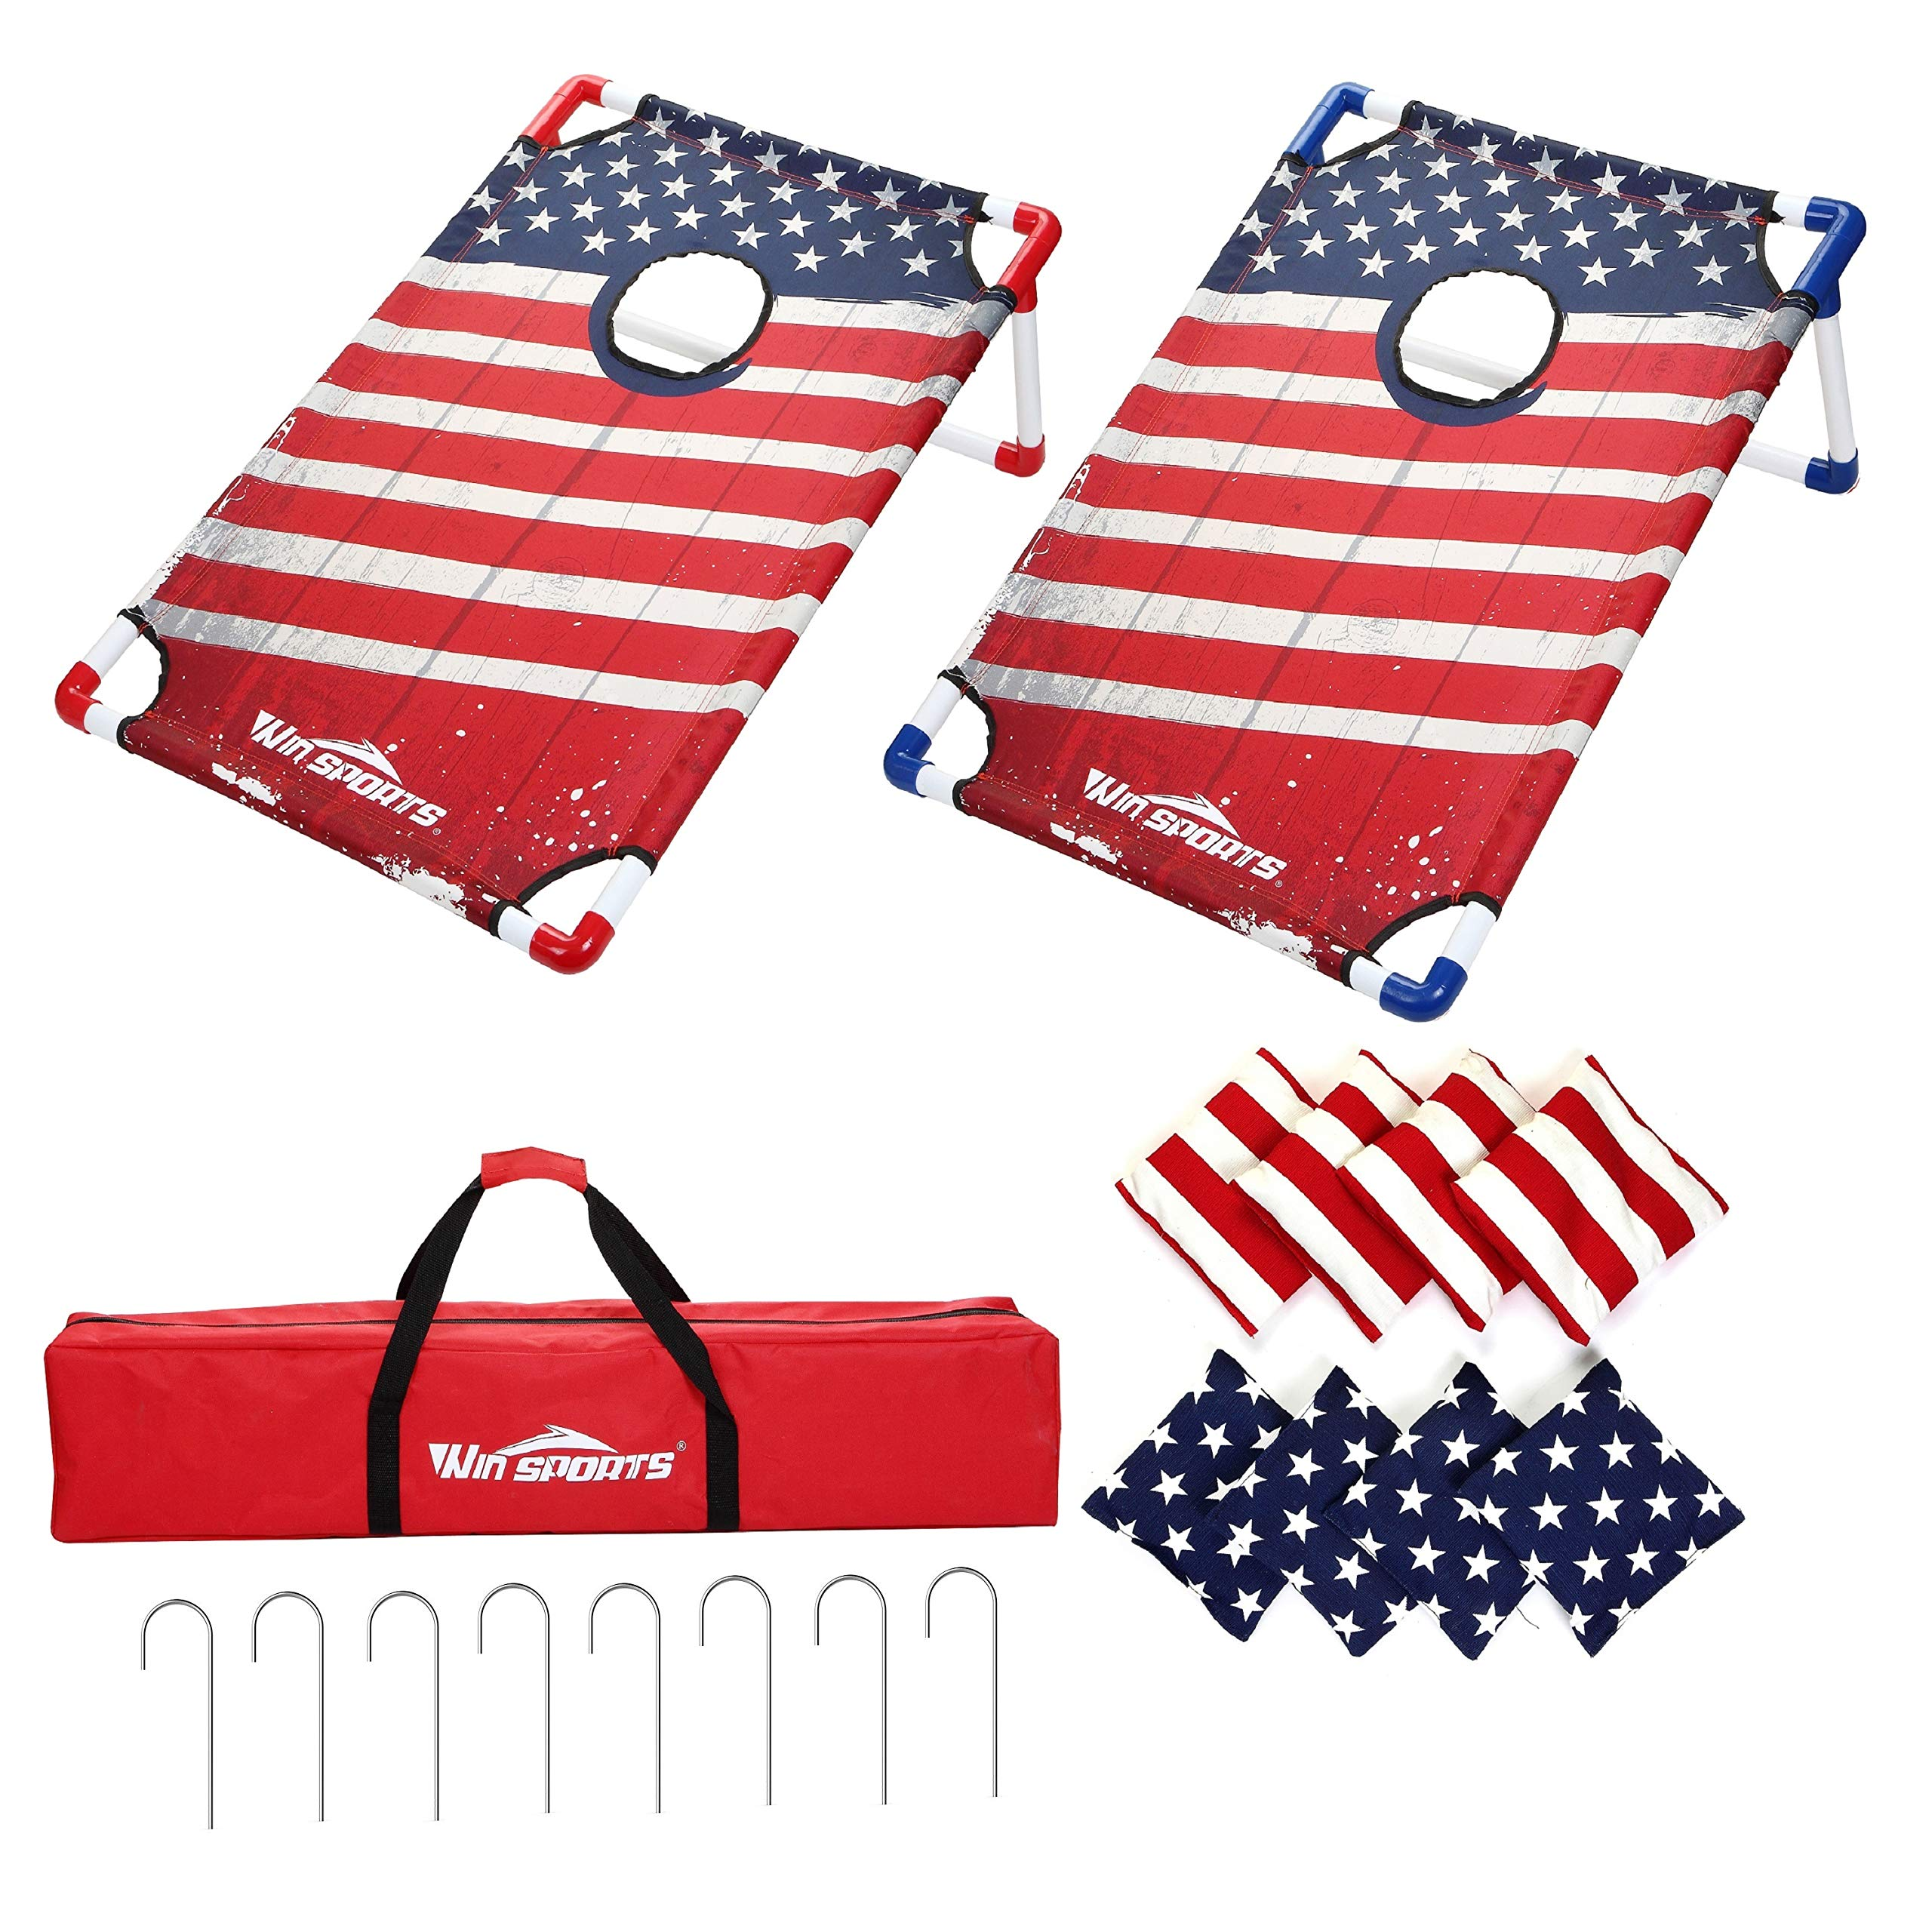 Win SPORTS Portable Assemble PVC Framed Cornhole Toss Game Set with 8 Bean Bags and Carrying Case(3 x 2-feet) - Choose Flag Design, Red & Blue (Flag Design) by Win SPORTS